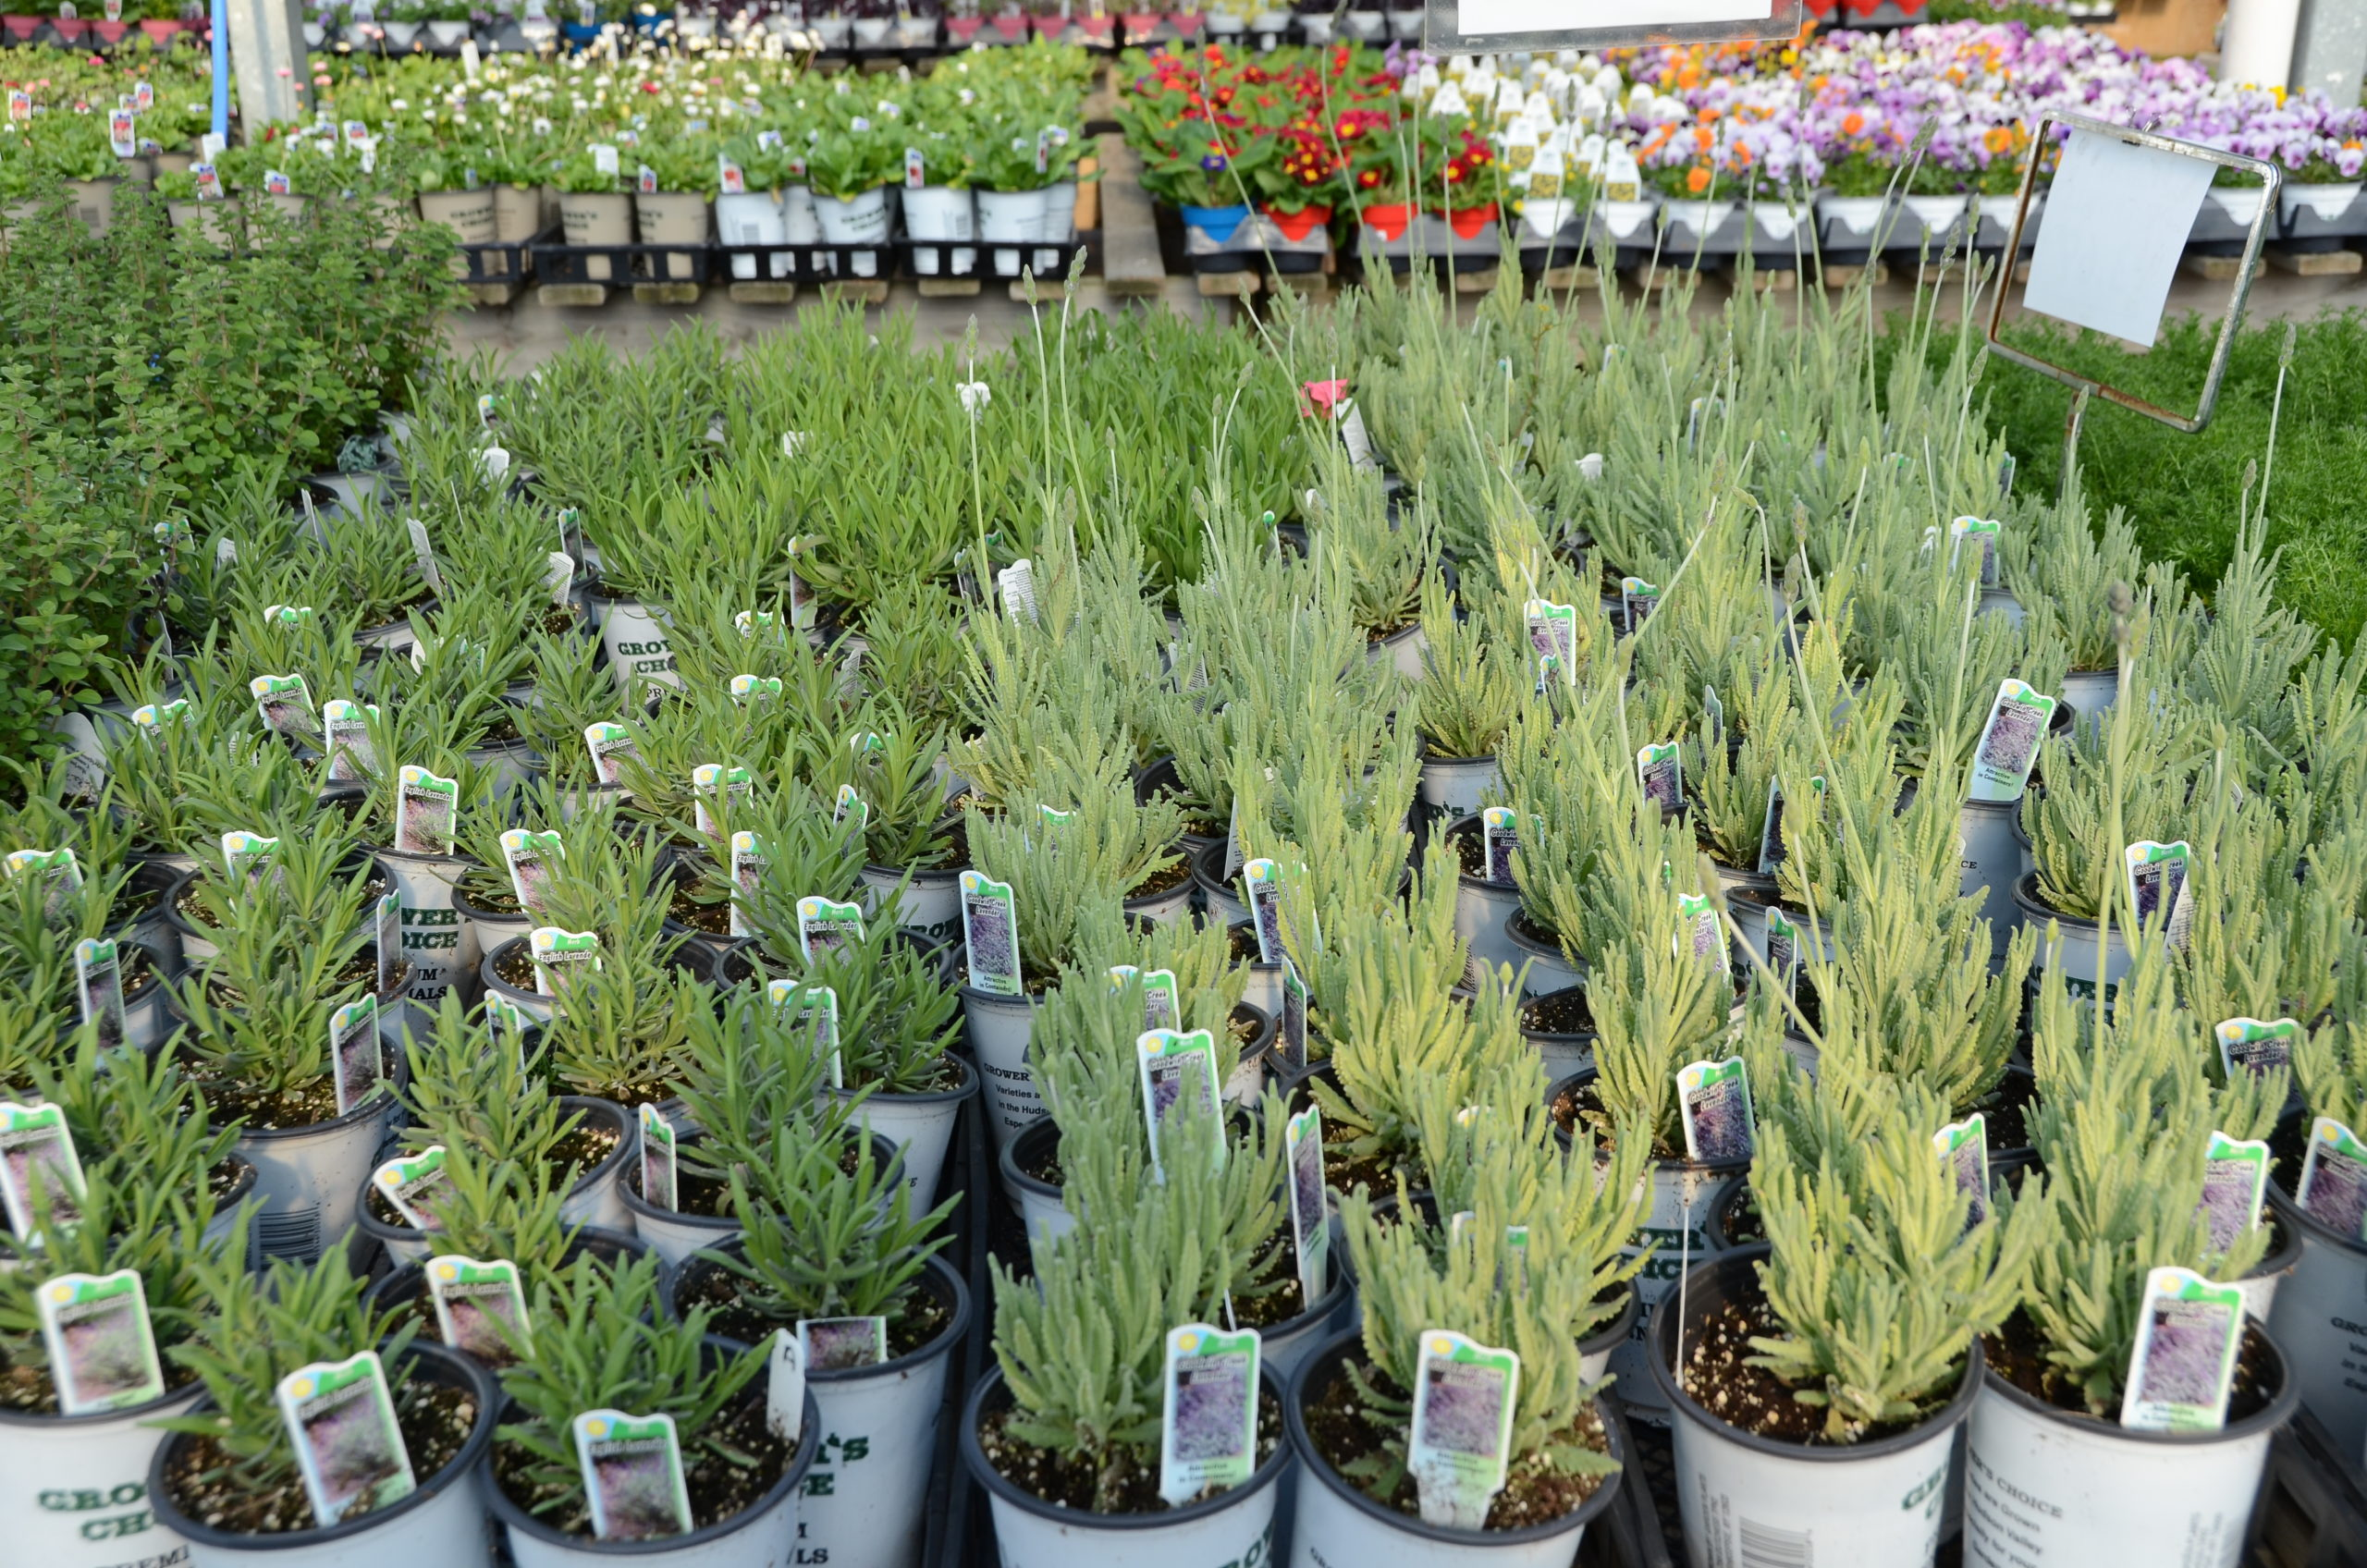 Potted lavender will start to show up in garden centers in May. They are usually available in several sizes from 4-inch pots up to gallon pots. ANDREW MESSINGER